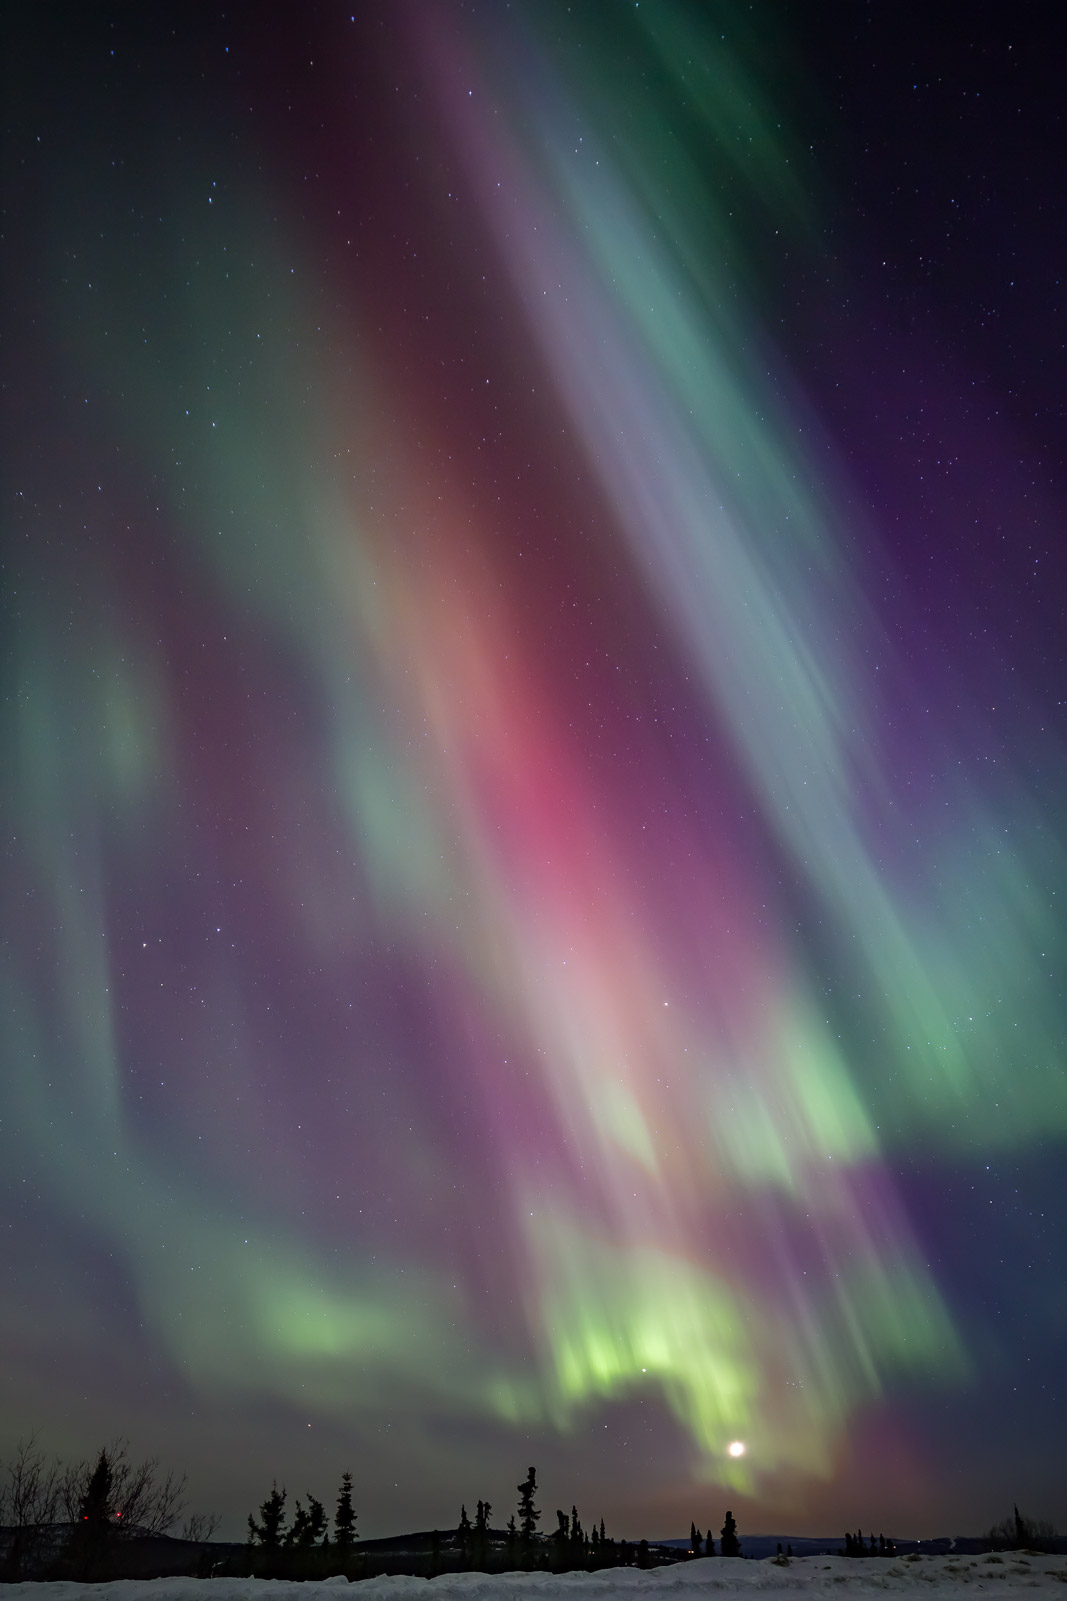 A Limited Edition, Fine Art photograph of a multi-colored aurora with green, red and purple colors above the full moon in Fairbanks...